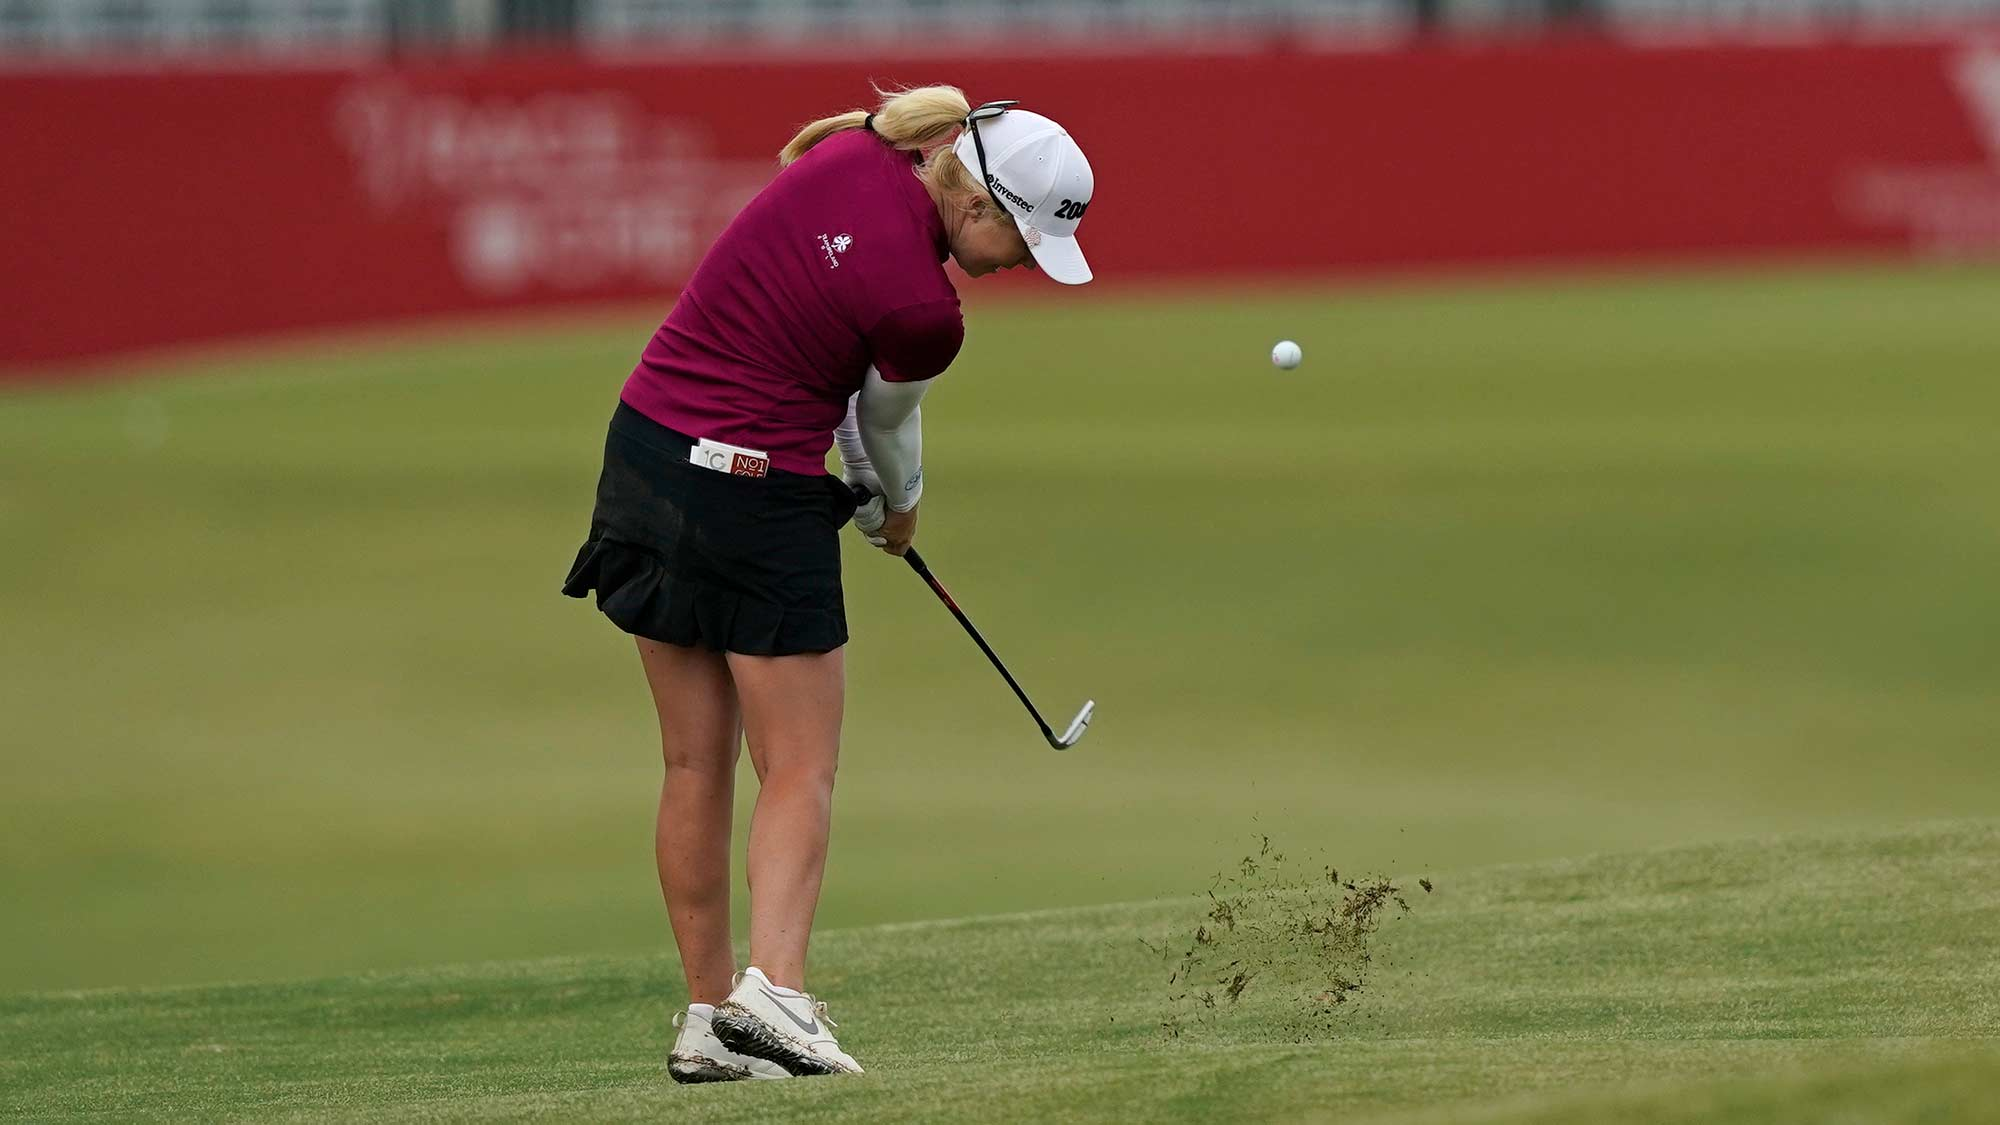 Stephanie Meadow at the second round of the VOA Classic